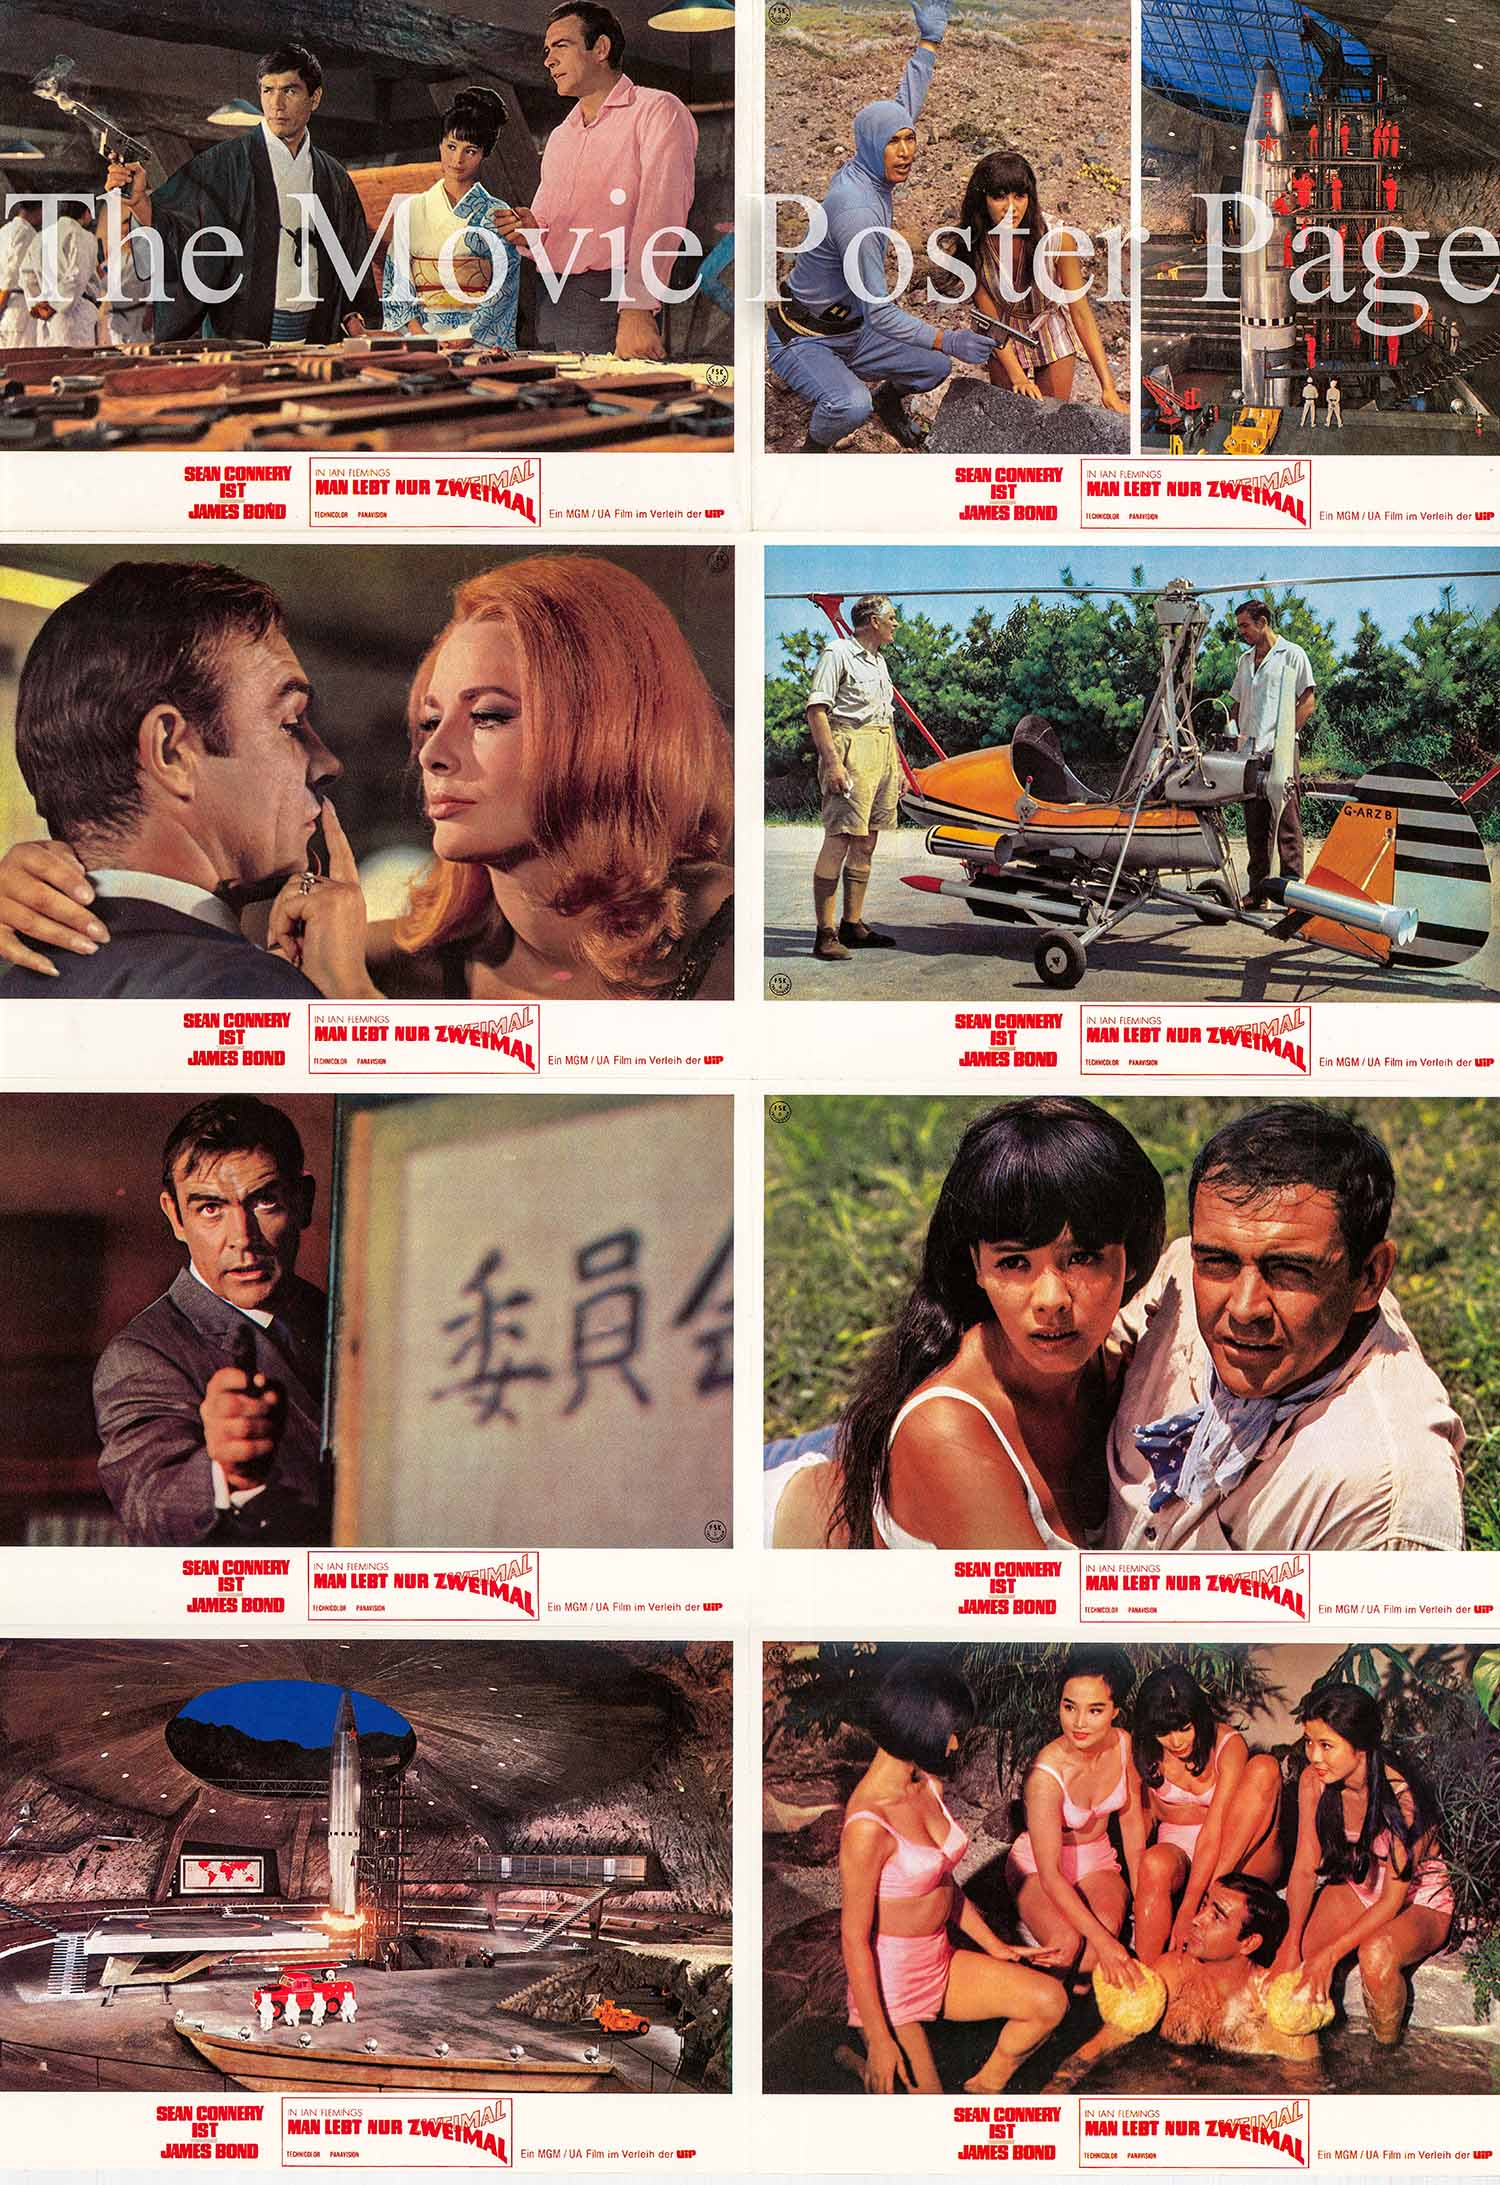 Pictured is a German perforated lobby sheet printed in the 1980s to promote a rerelease of the 1967 Lewis Gilbert film You Only Live Twice starring Sean Connery as James Bond.